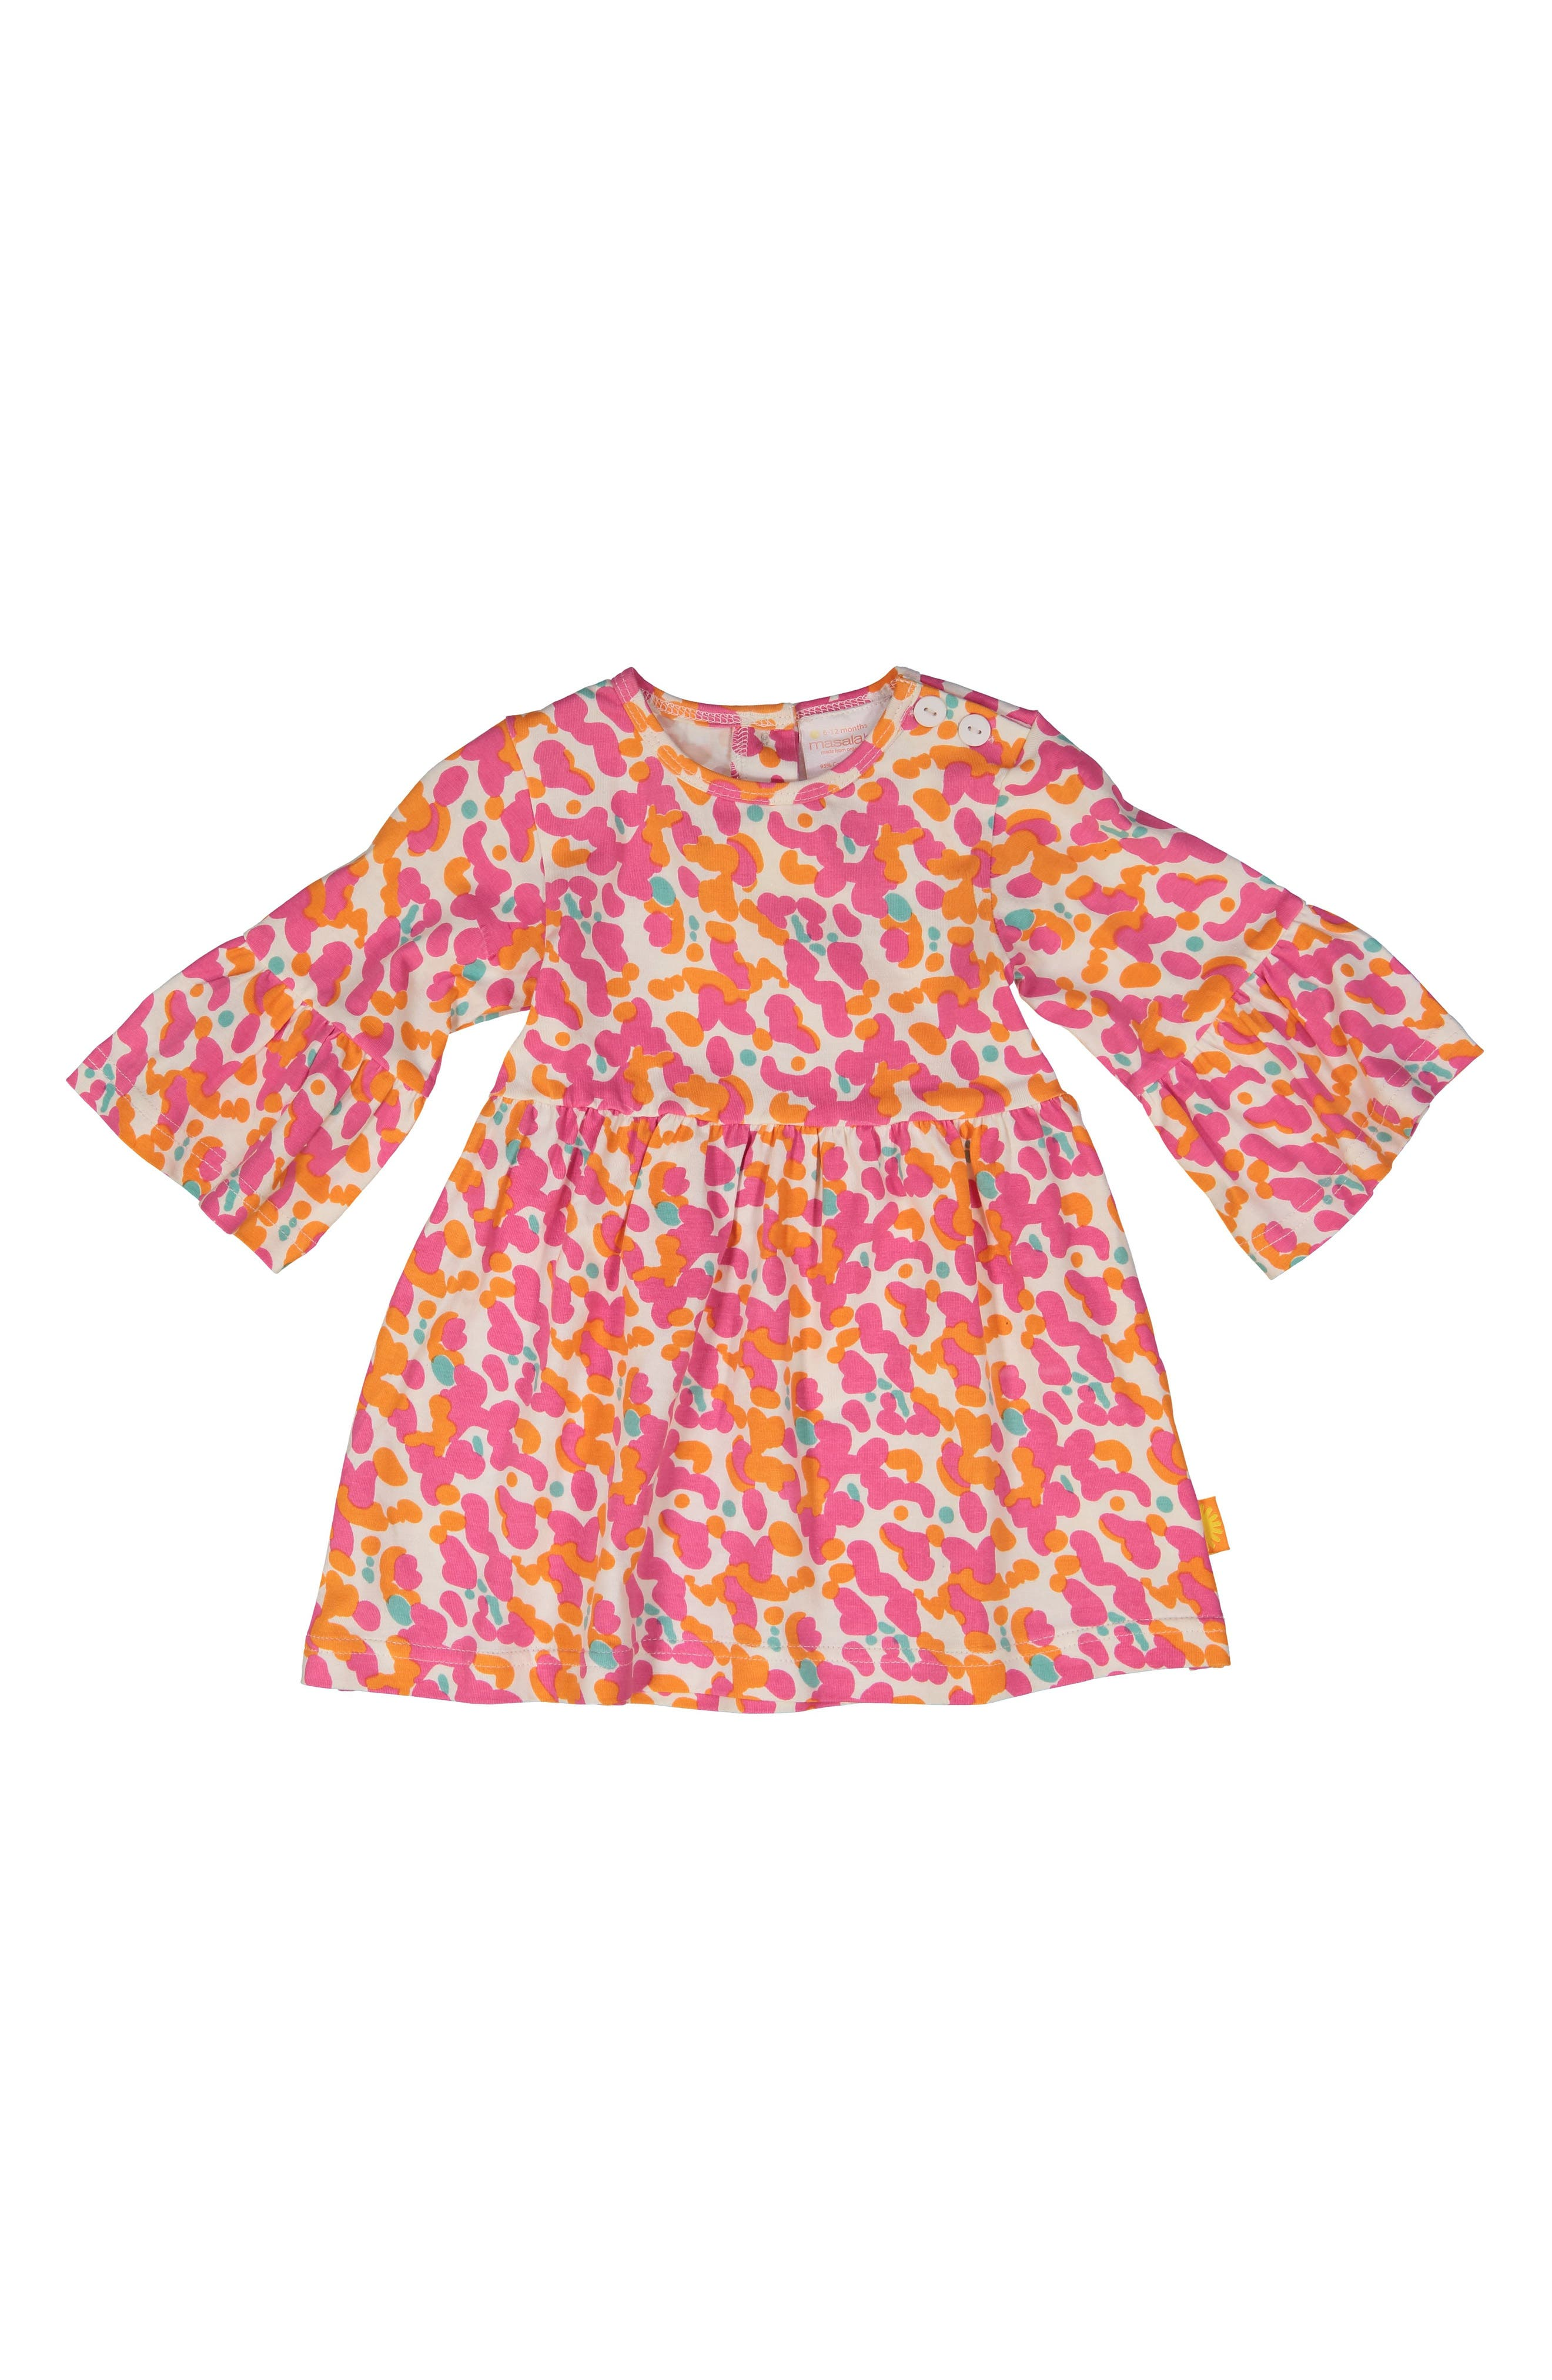 Spotted Stretch Organic Cotton Dress,                             Main thumbnail 1, color,                             PINK